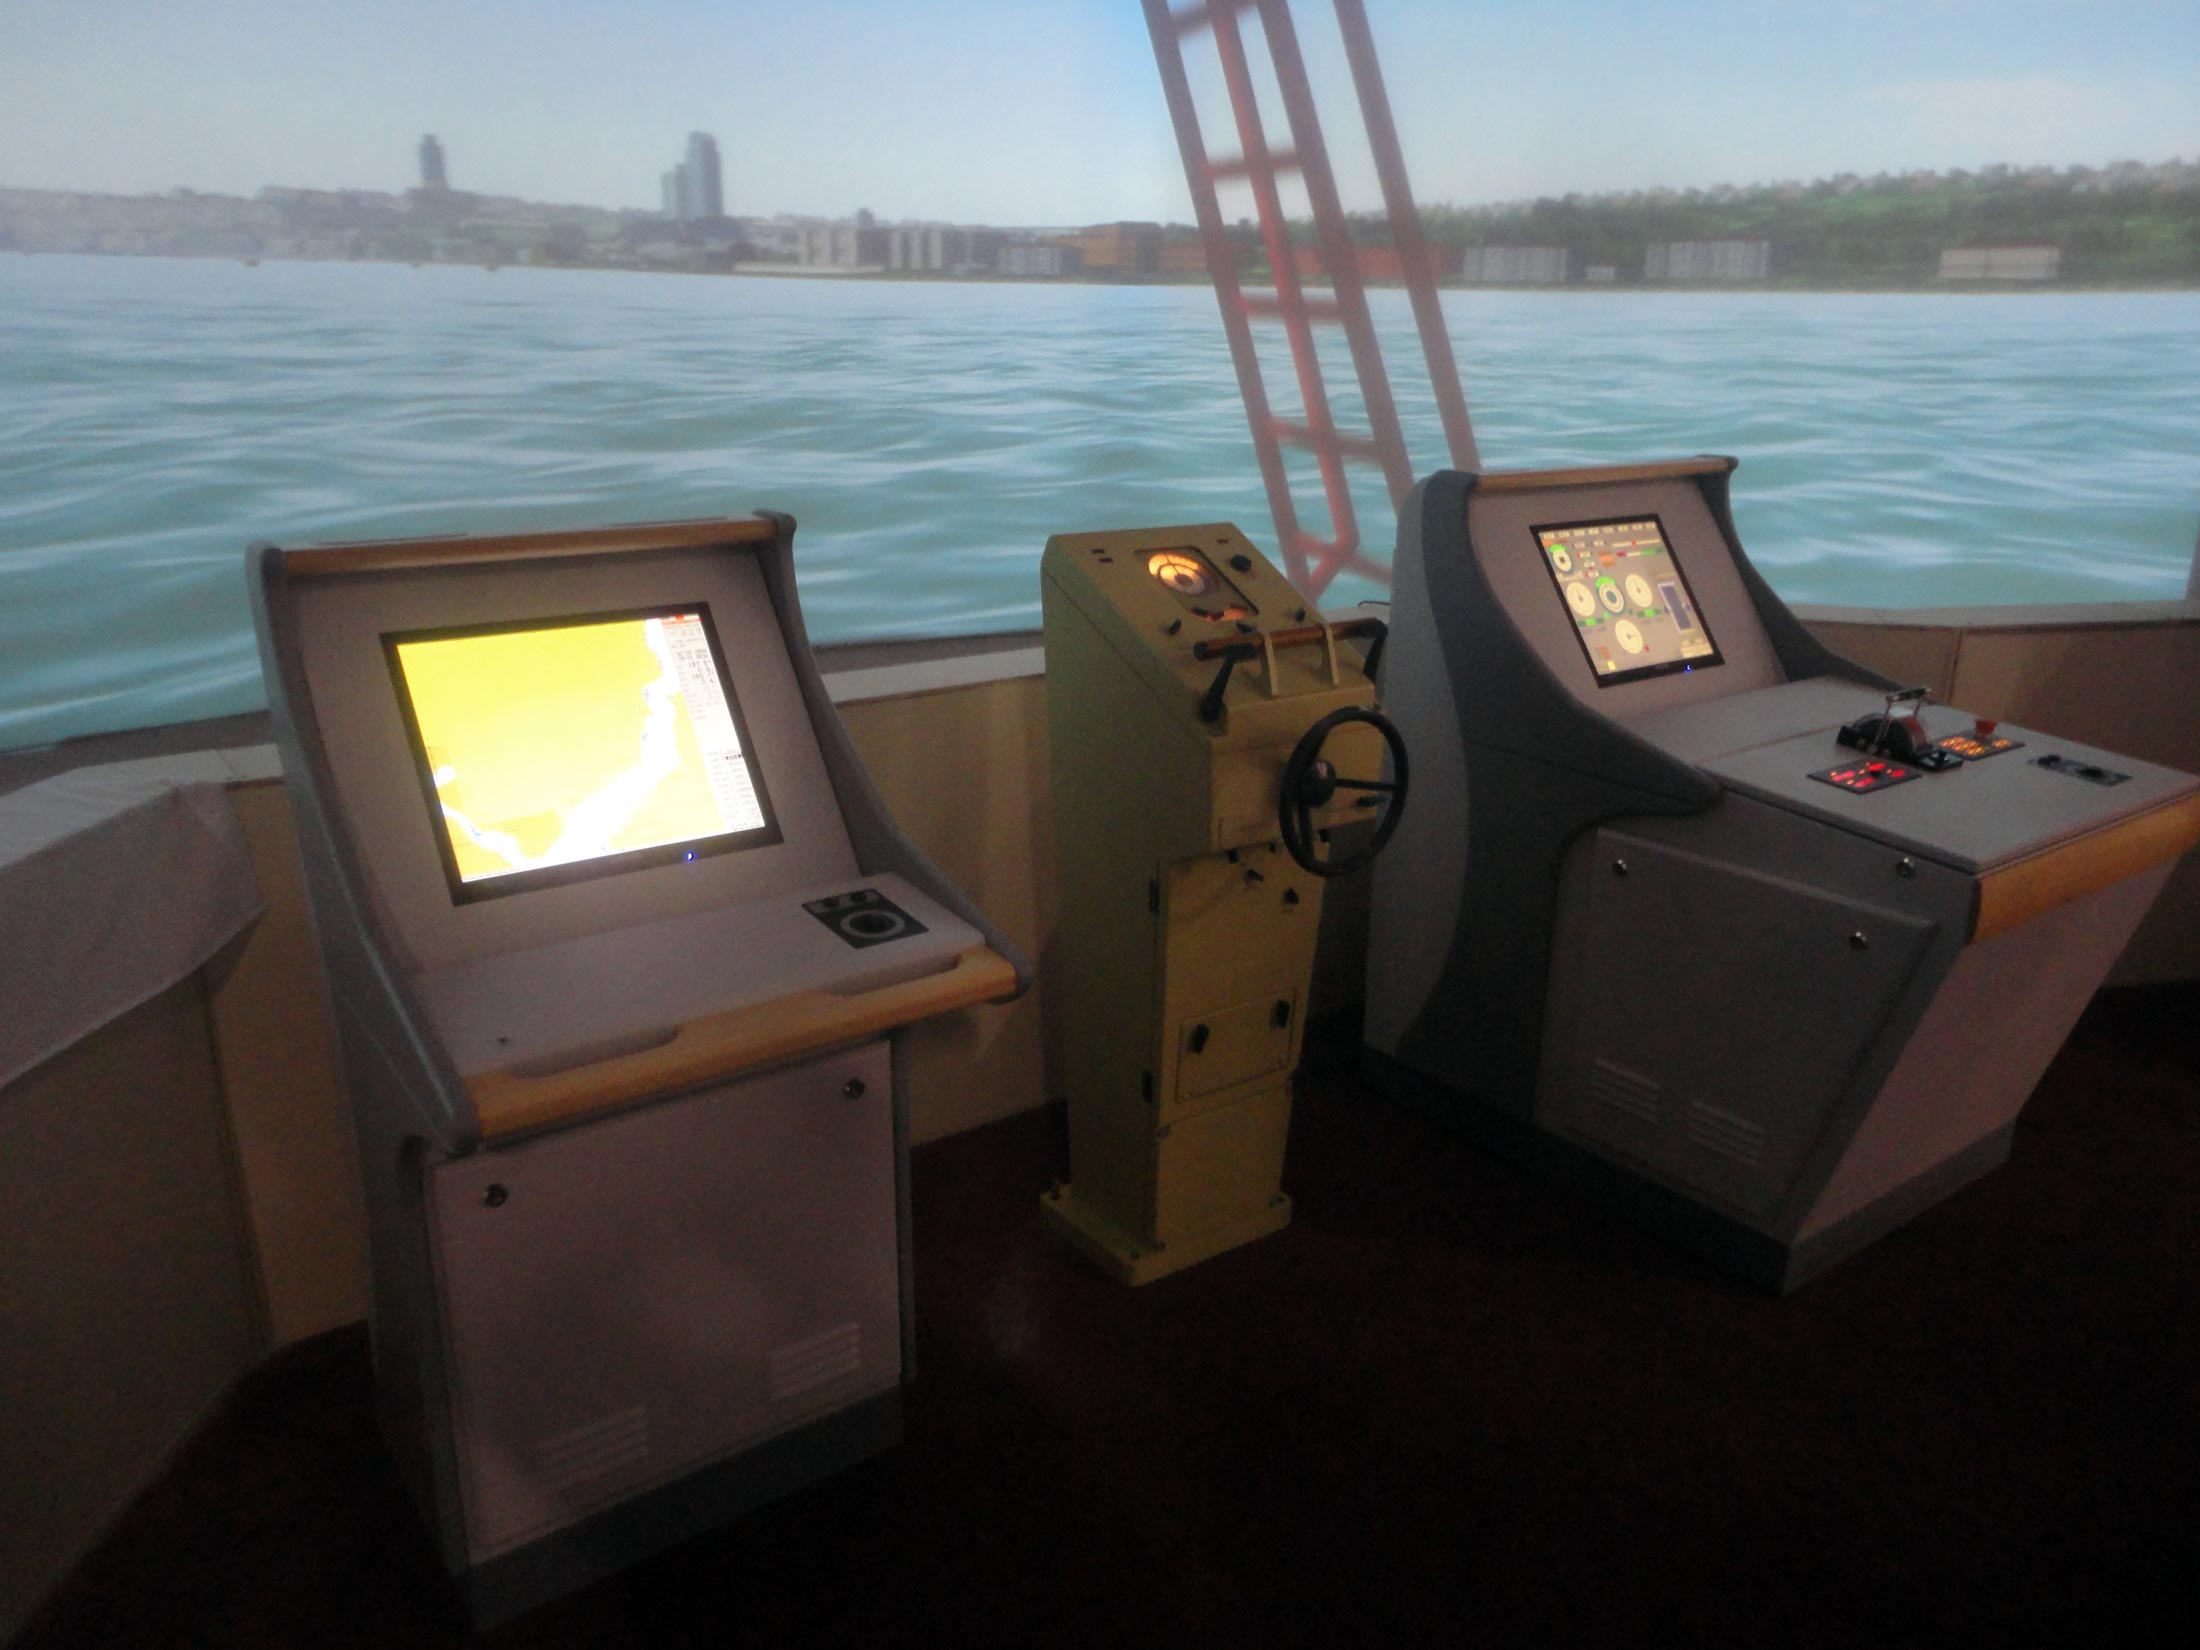 Russian ship simulators